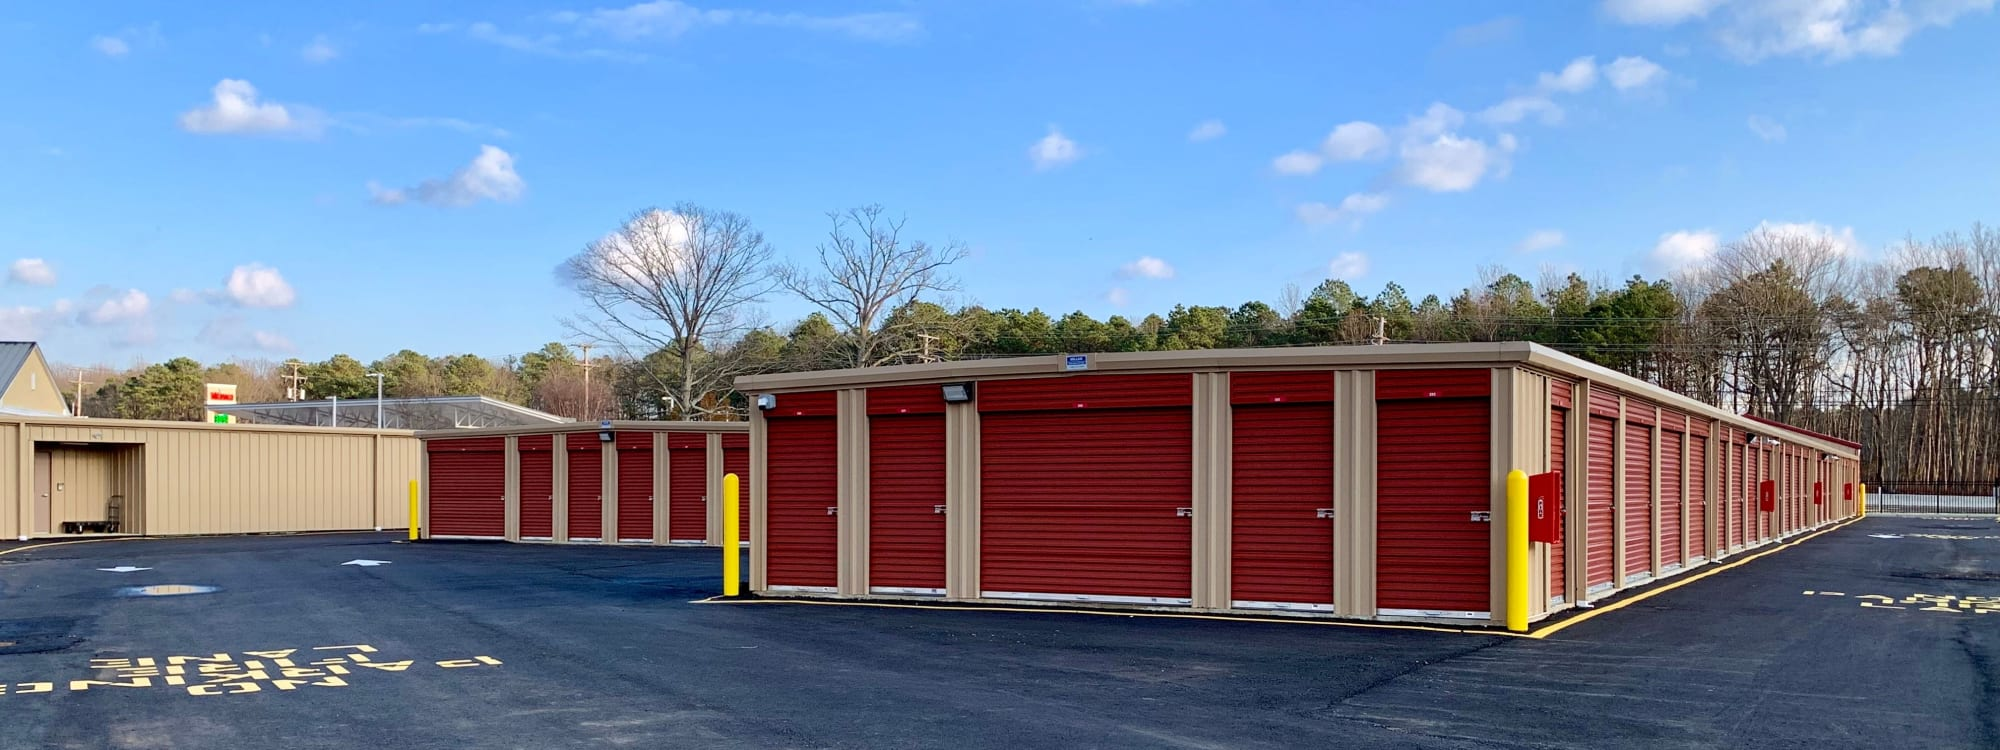 Self storage units at Storage Authority Monmouth Rd in Millstone Township, New Jersey.